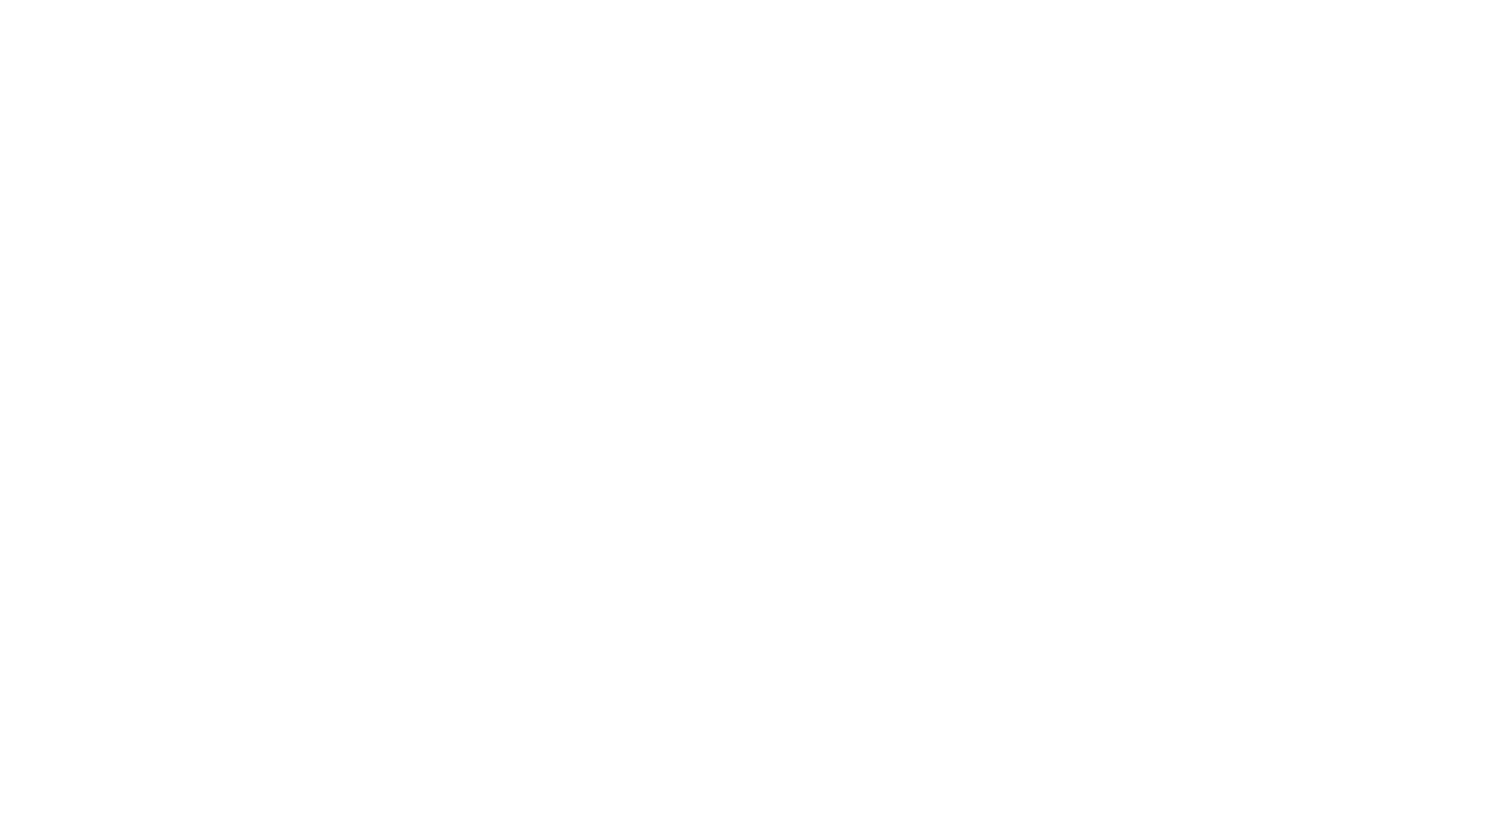 Brandywine Creek Vineyards & Winery